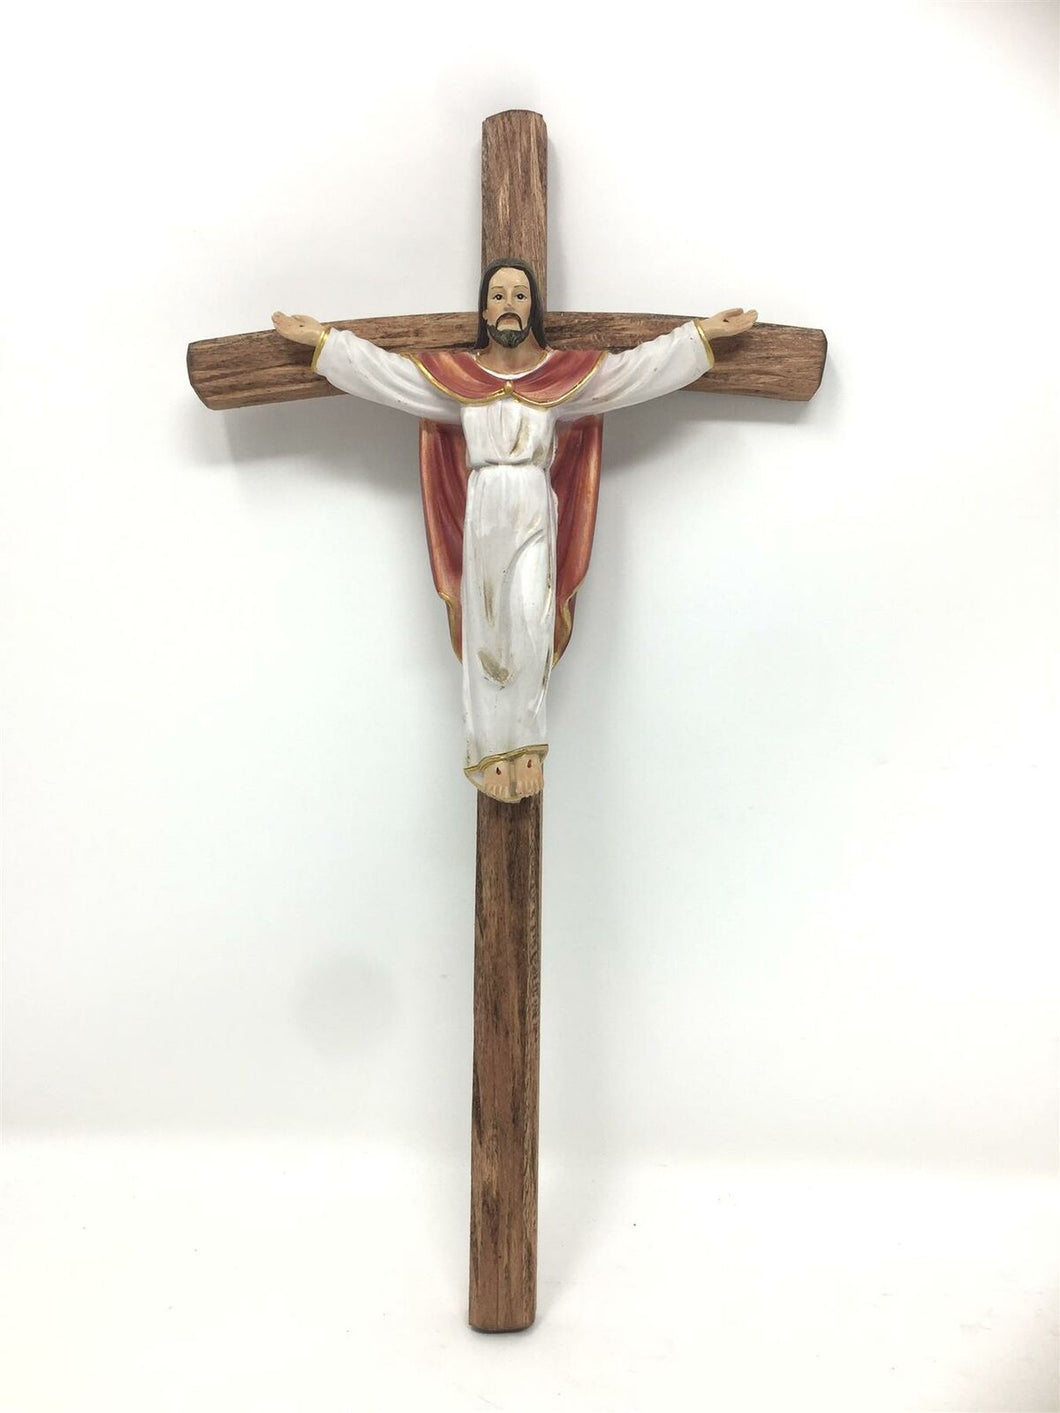 Risen Jesus Christ Crucifix Hanging Wall Cross Religious Ornament